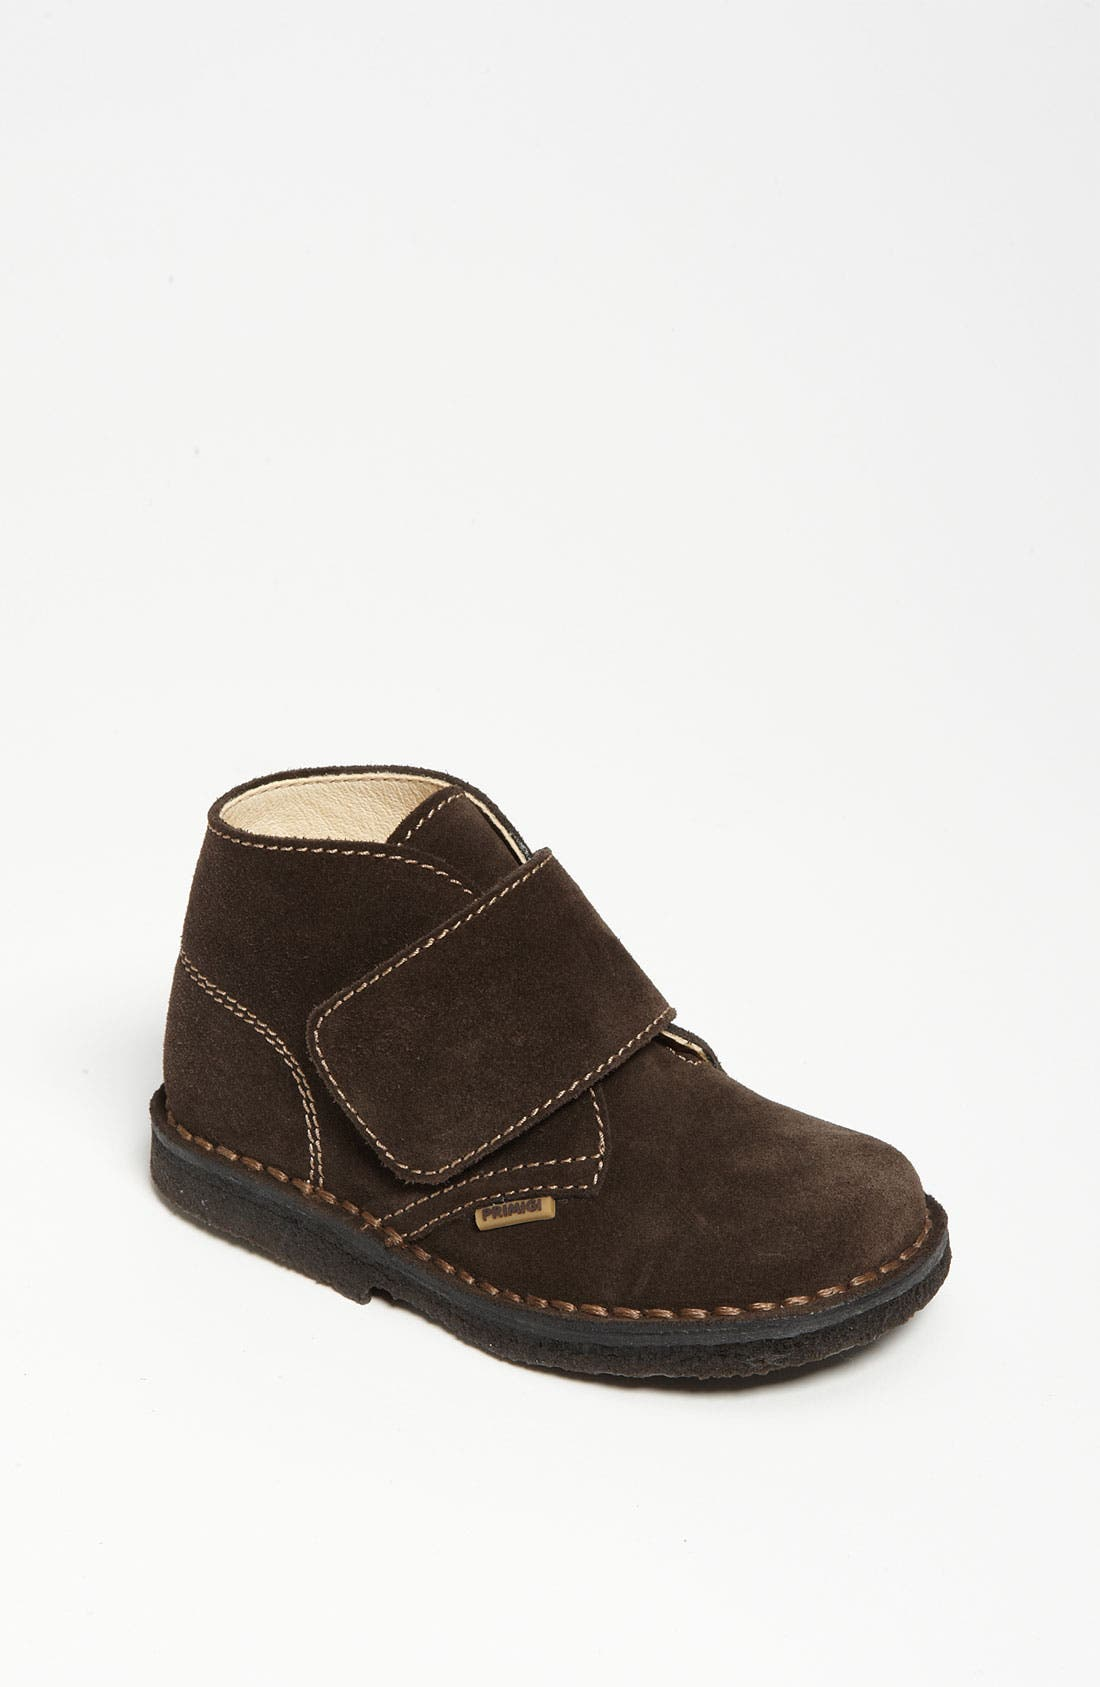 Main Image - Primigi 'Groungy' Boot (Toddler)